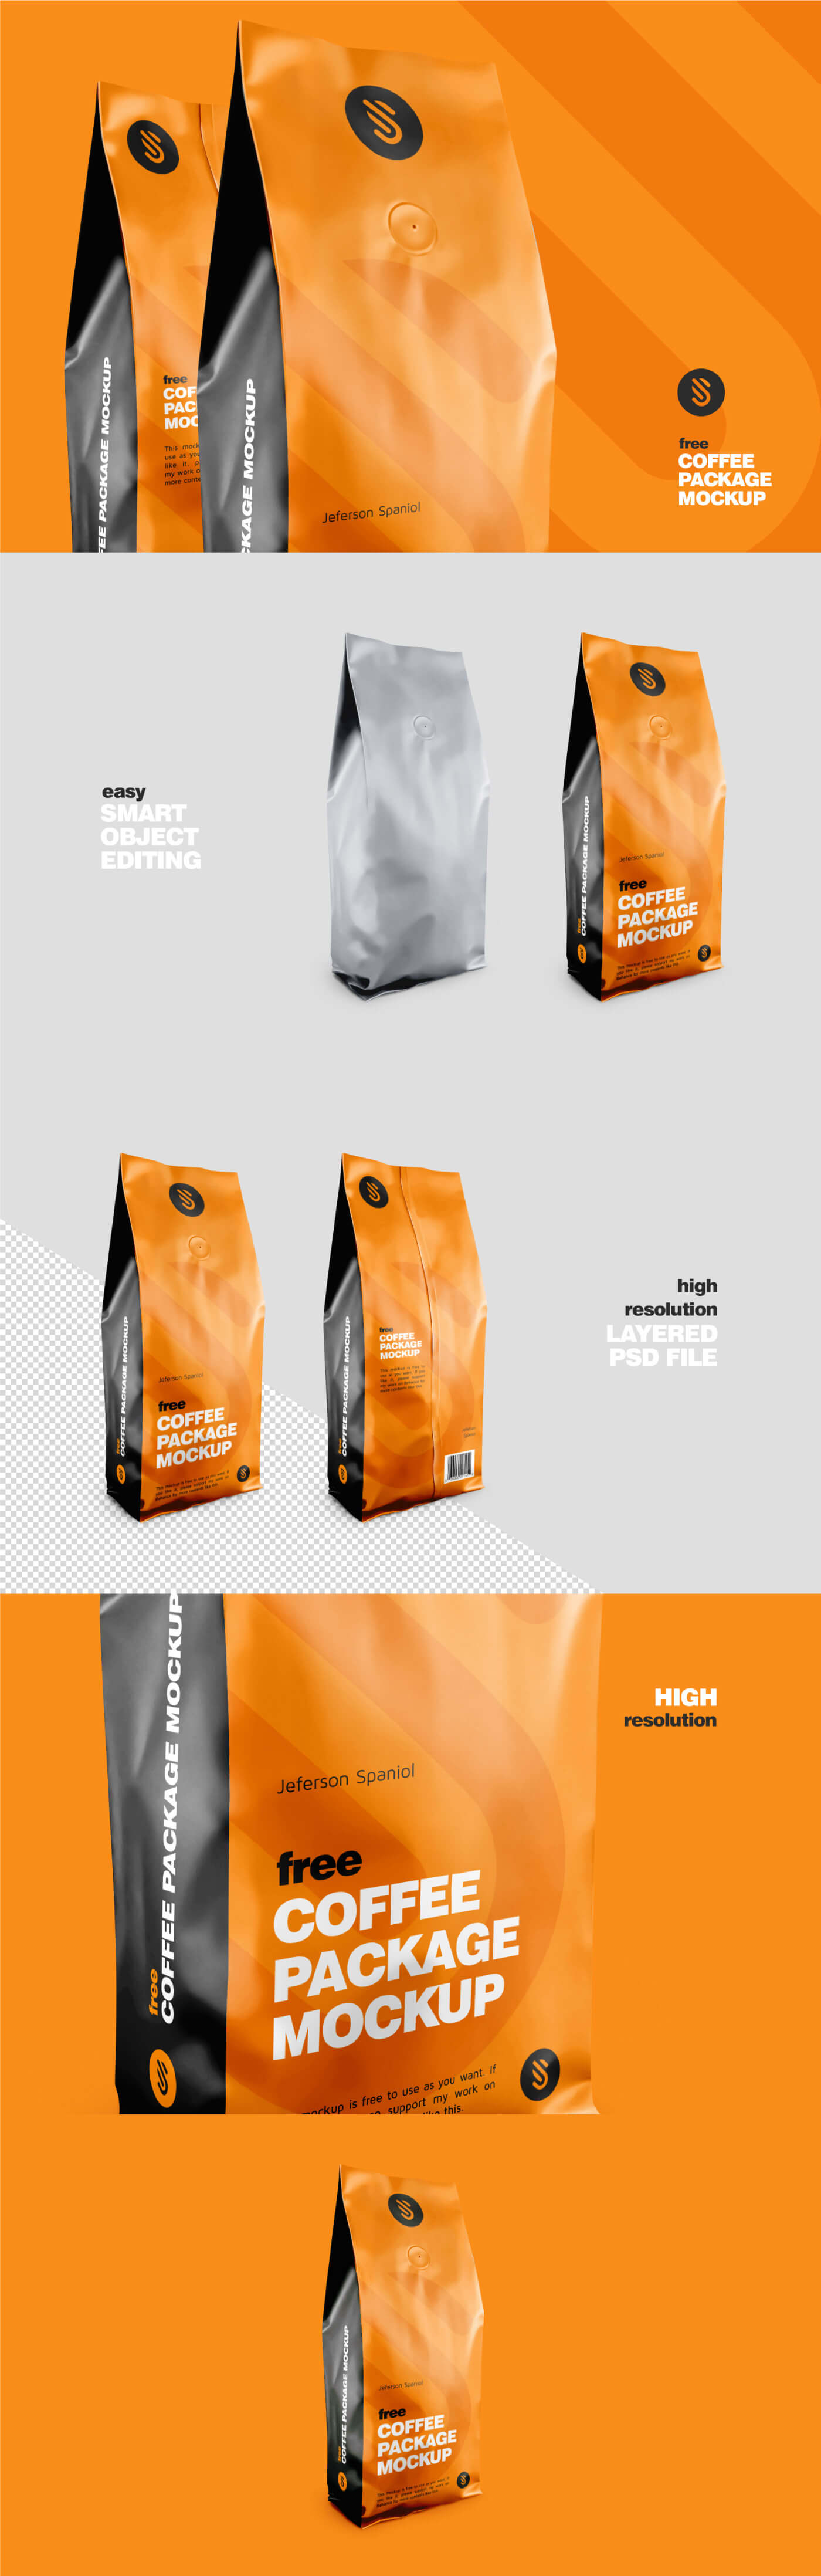 Free Coffee Package Mockup presentation image